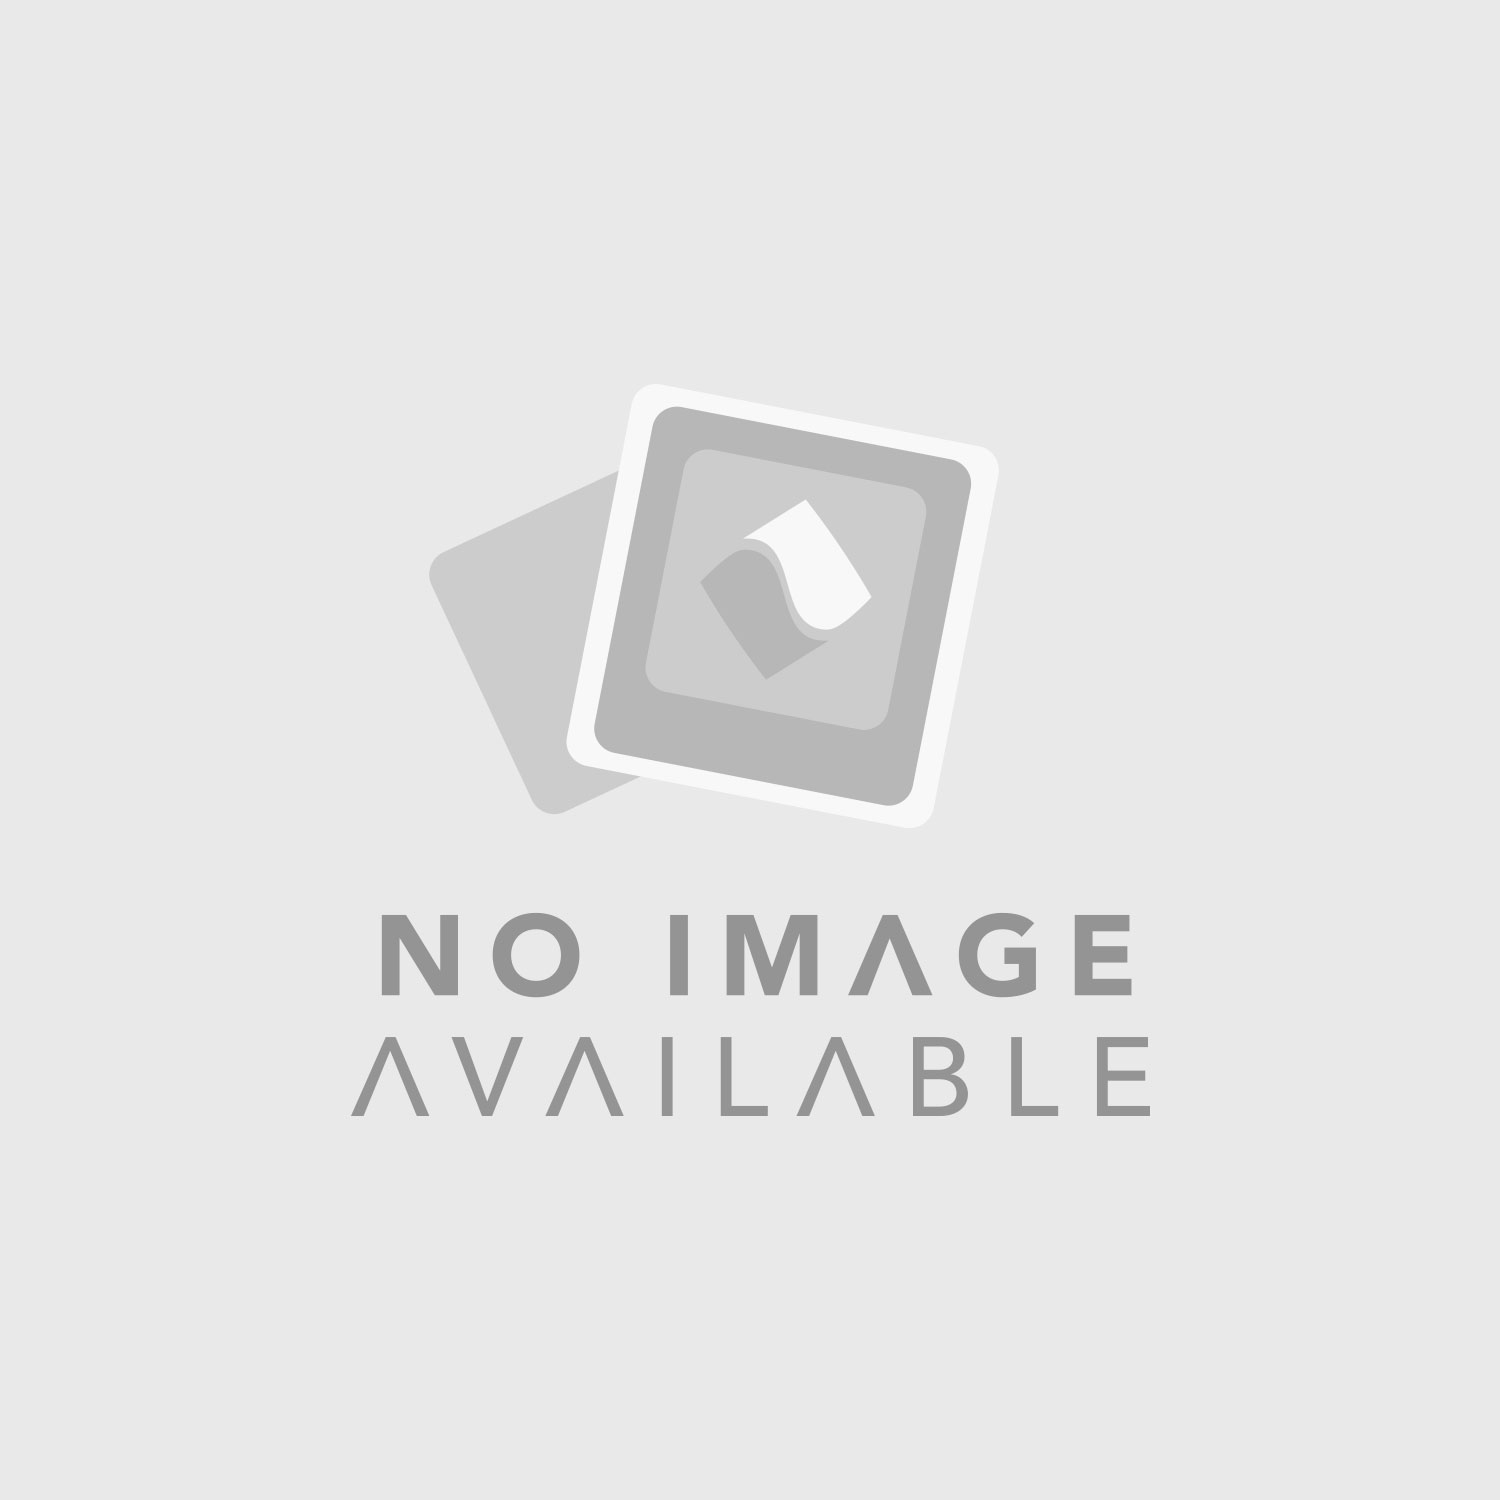 "Electro-Voice EVF-1122S 12"" 2-Way Full-Range Outdoor Speaker (Fiberglass-Finish, White, 60 x 40°)"